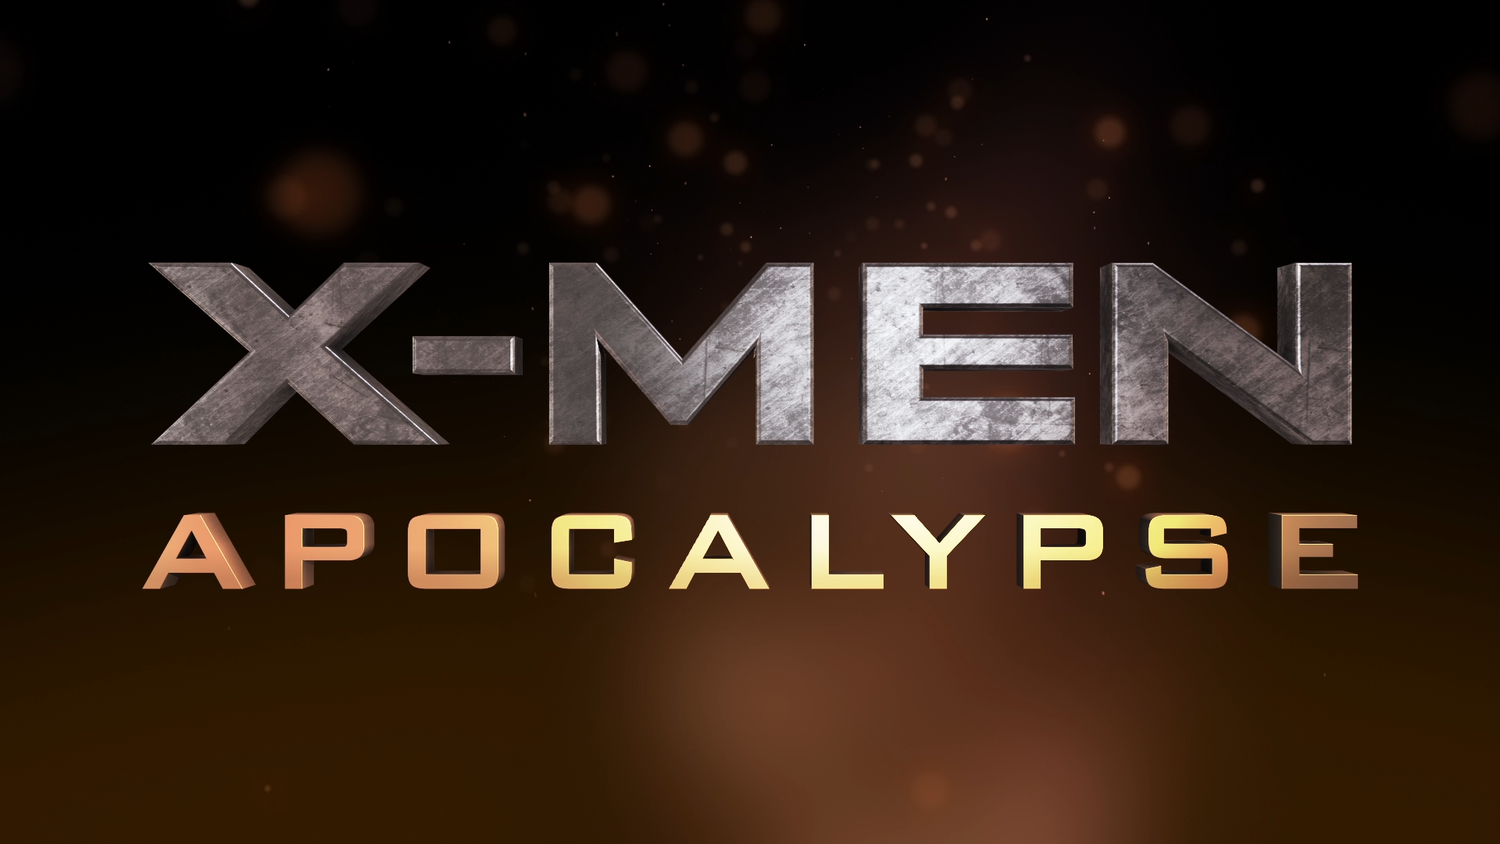 Element 3d v2 tutorials for after effects cc motion tutorials recreate the x men apocalpyse 3d titles in after effects with element 3d baditri Image collections